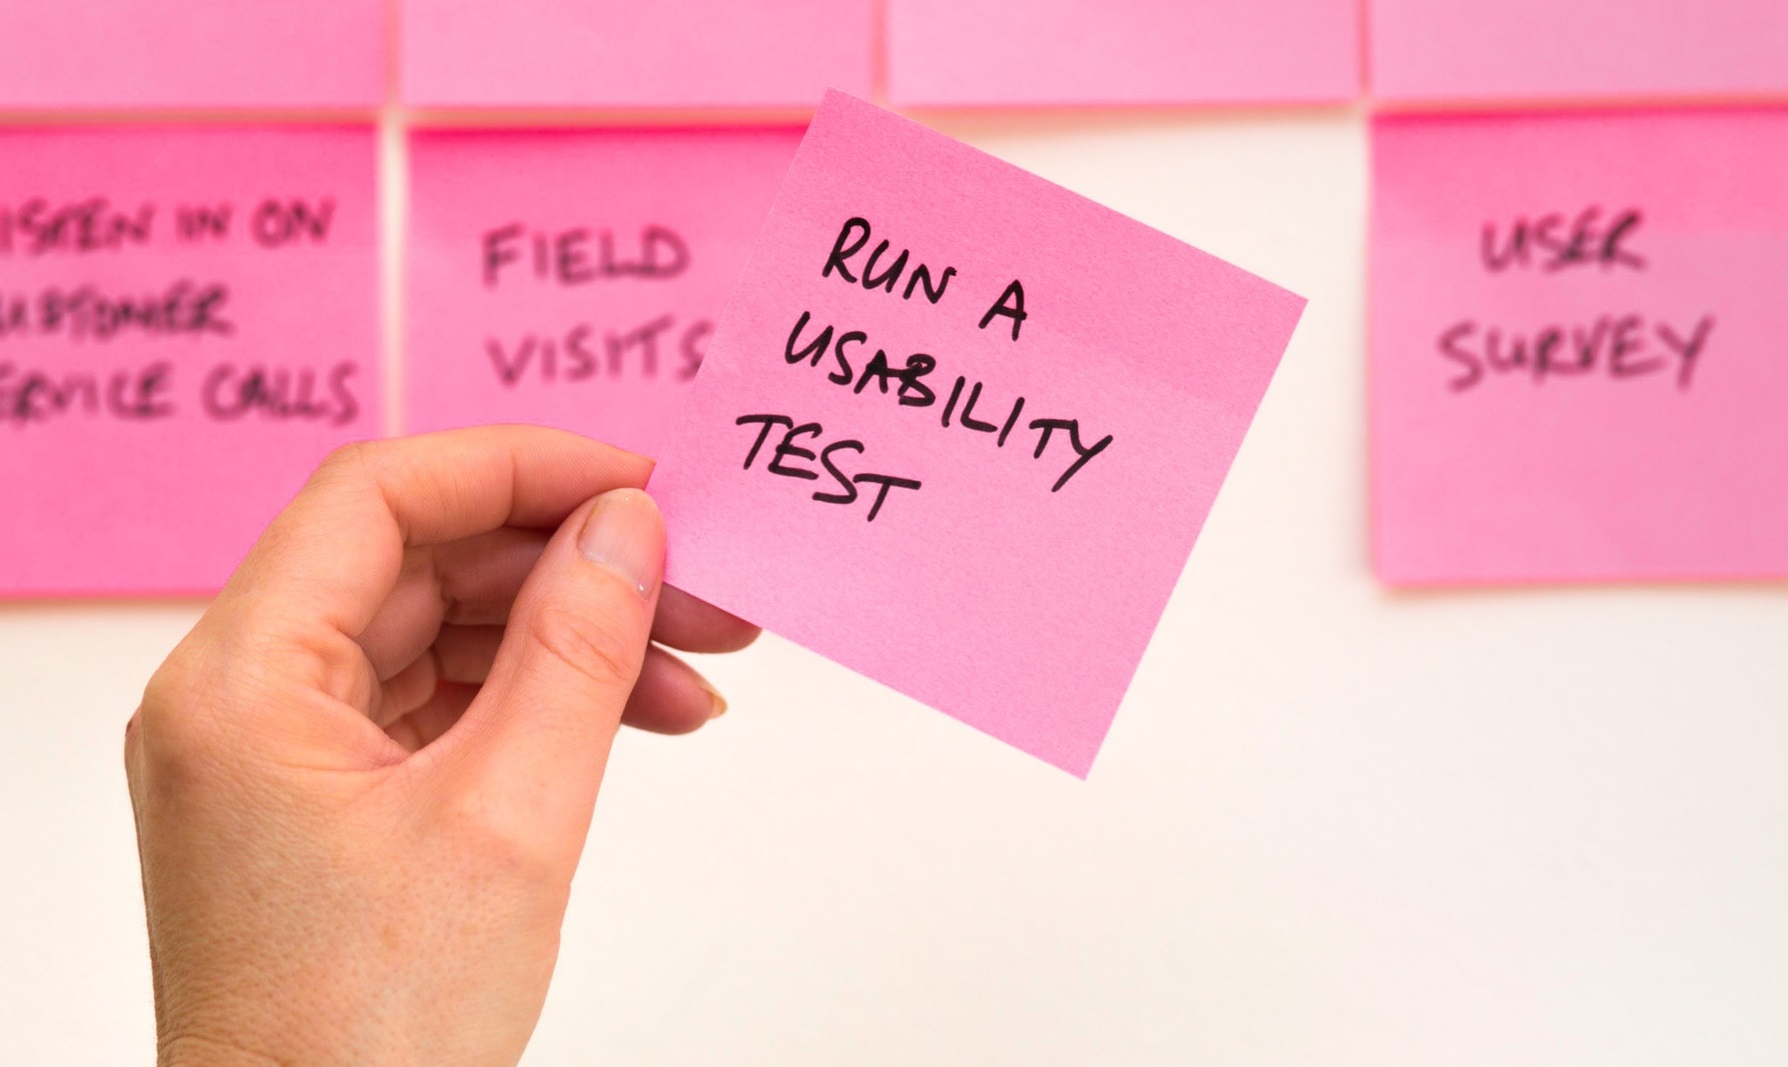 A hand holding a note making reference to running a usability test